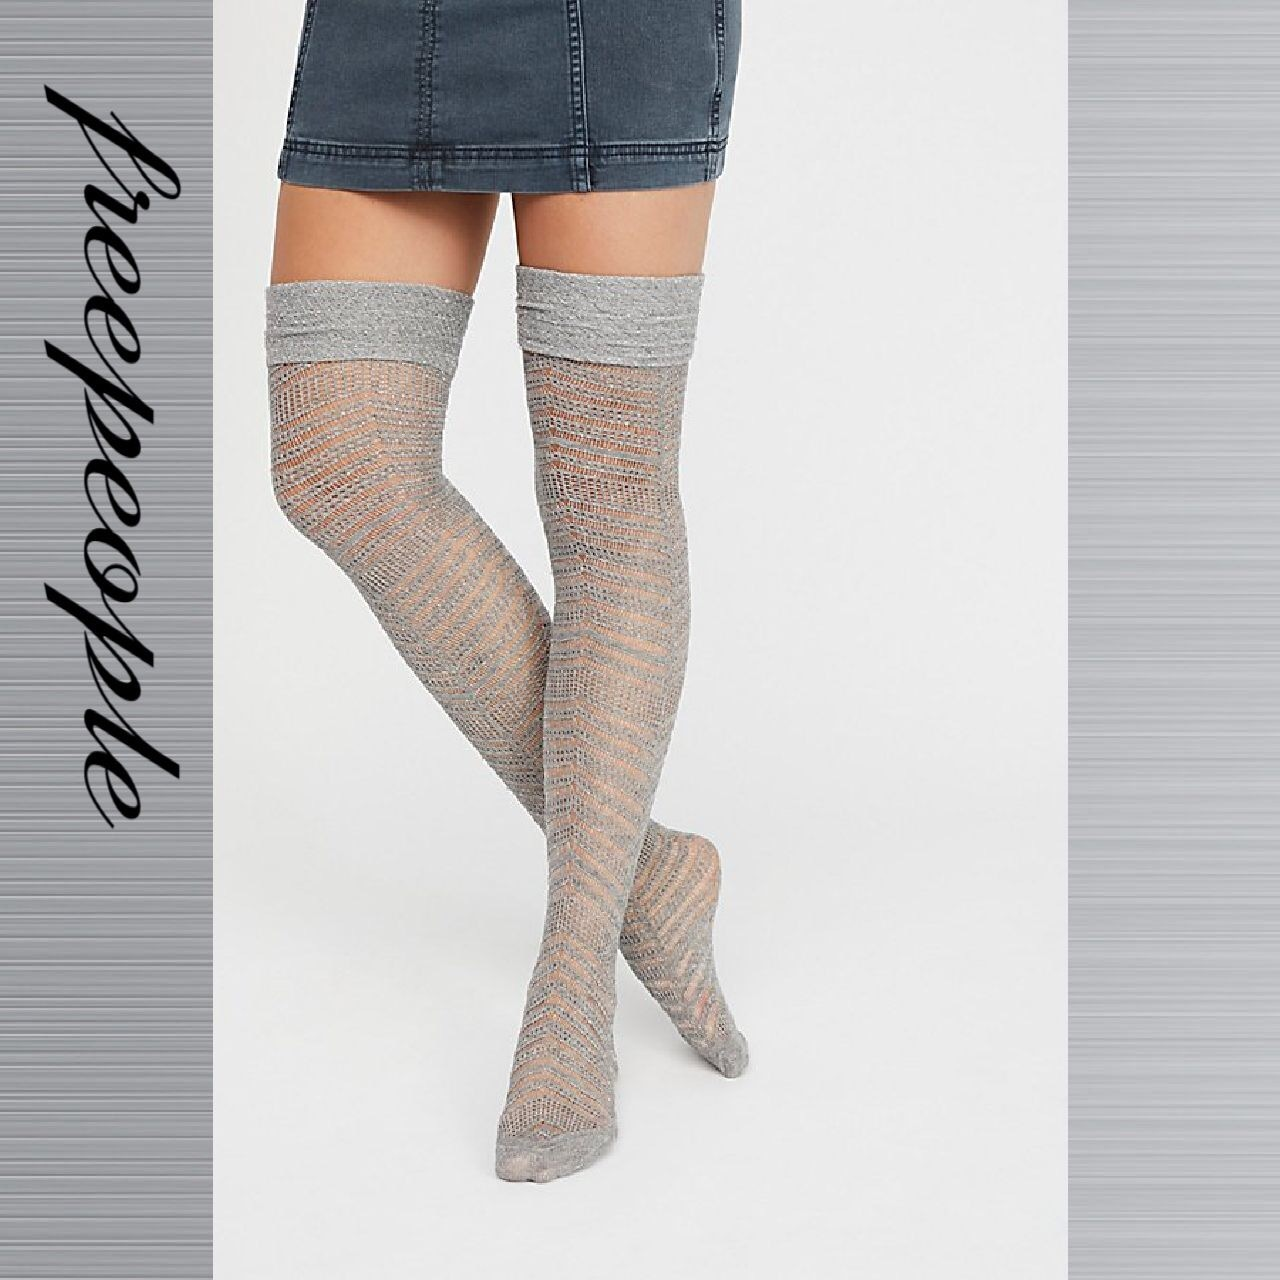 Free People フリーピープル Outshine Over-The-Knee ソックス